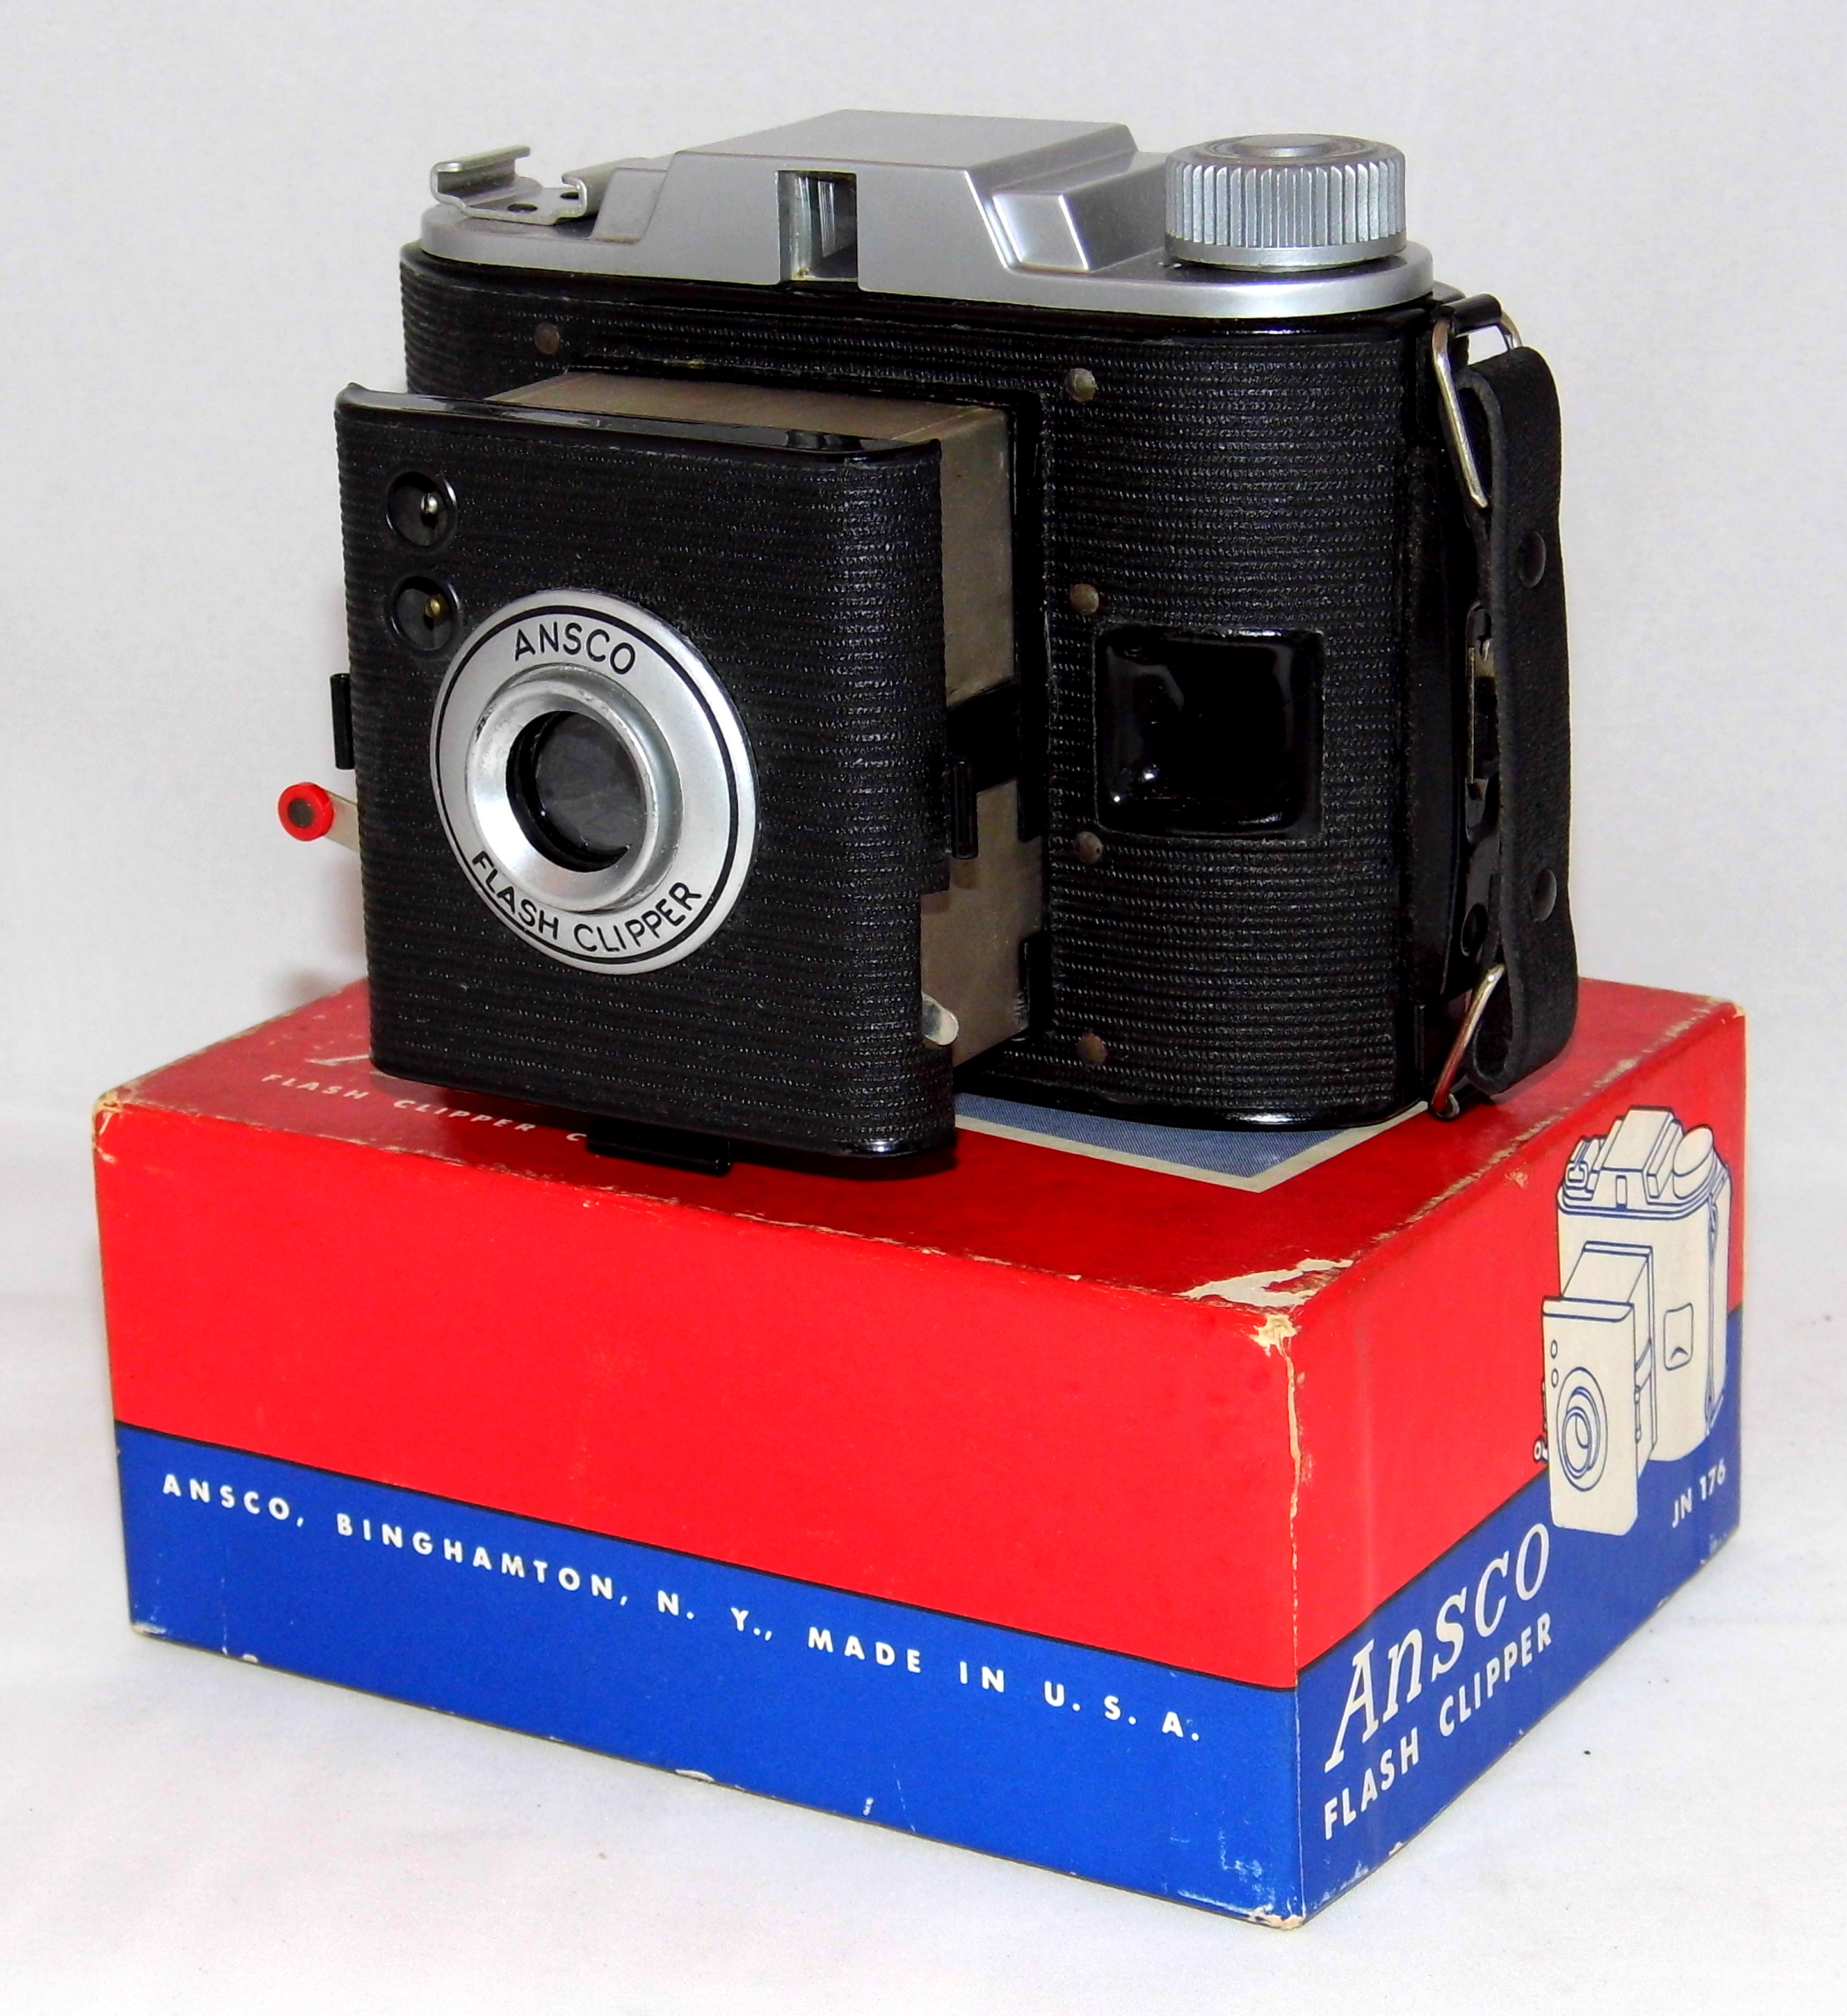 file vintage ansco flash clipper camera model jn 176 simple point